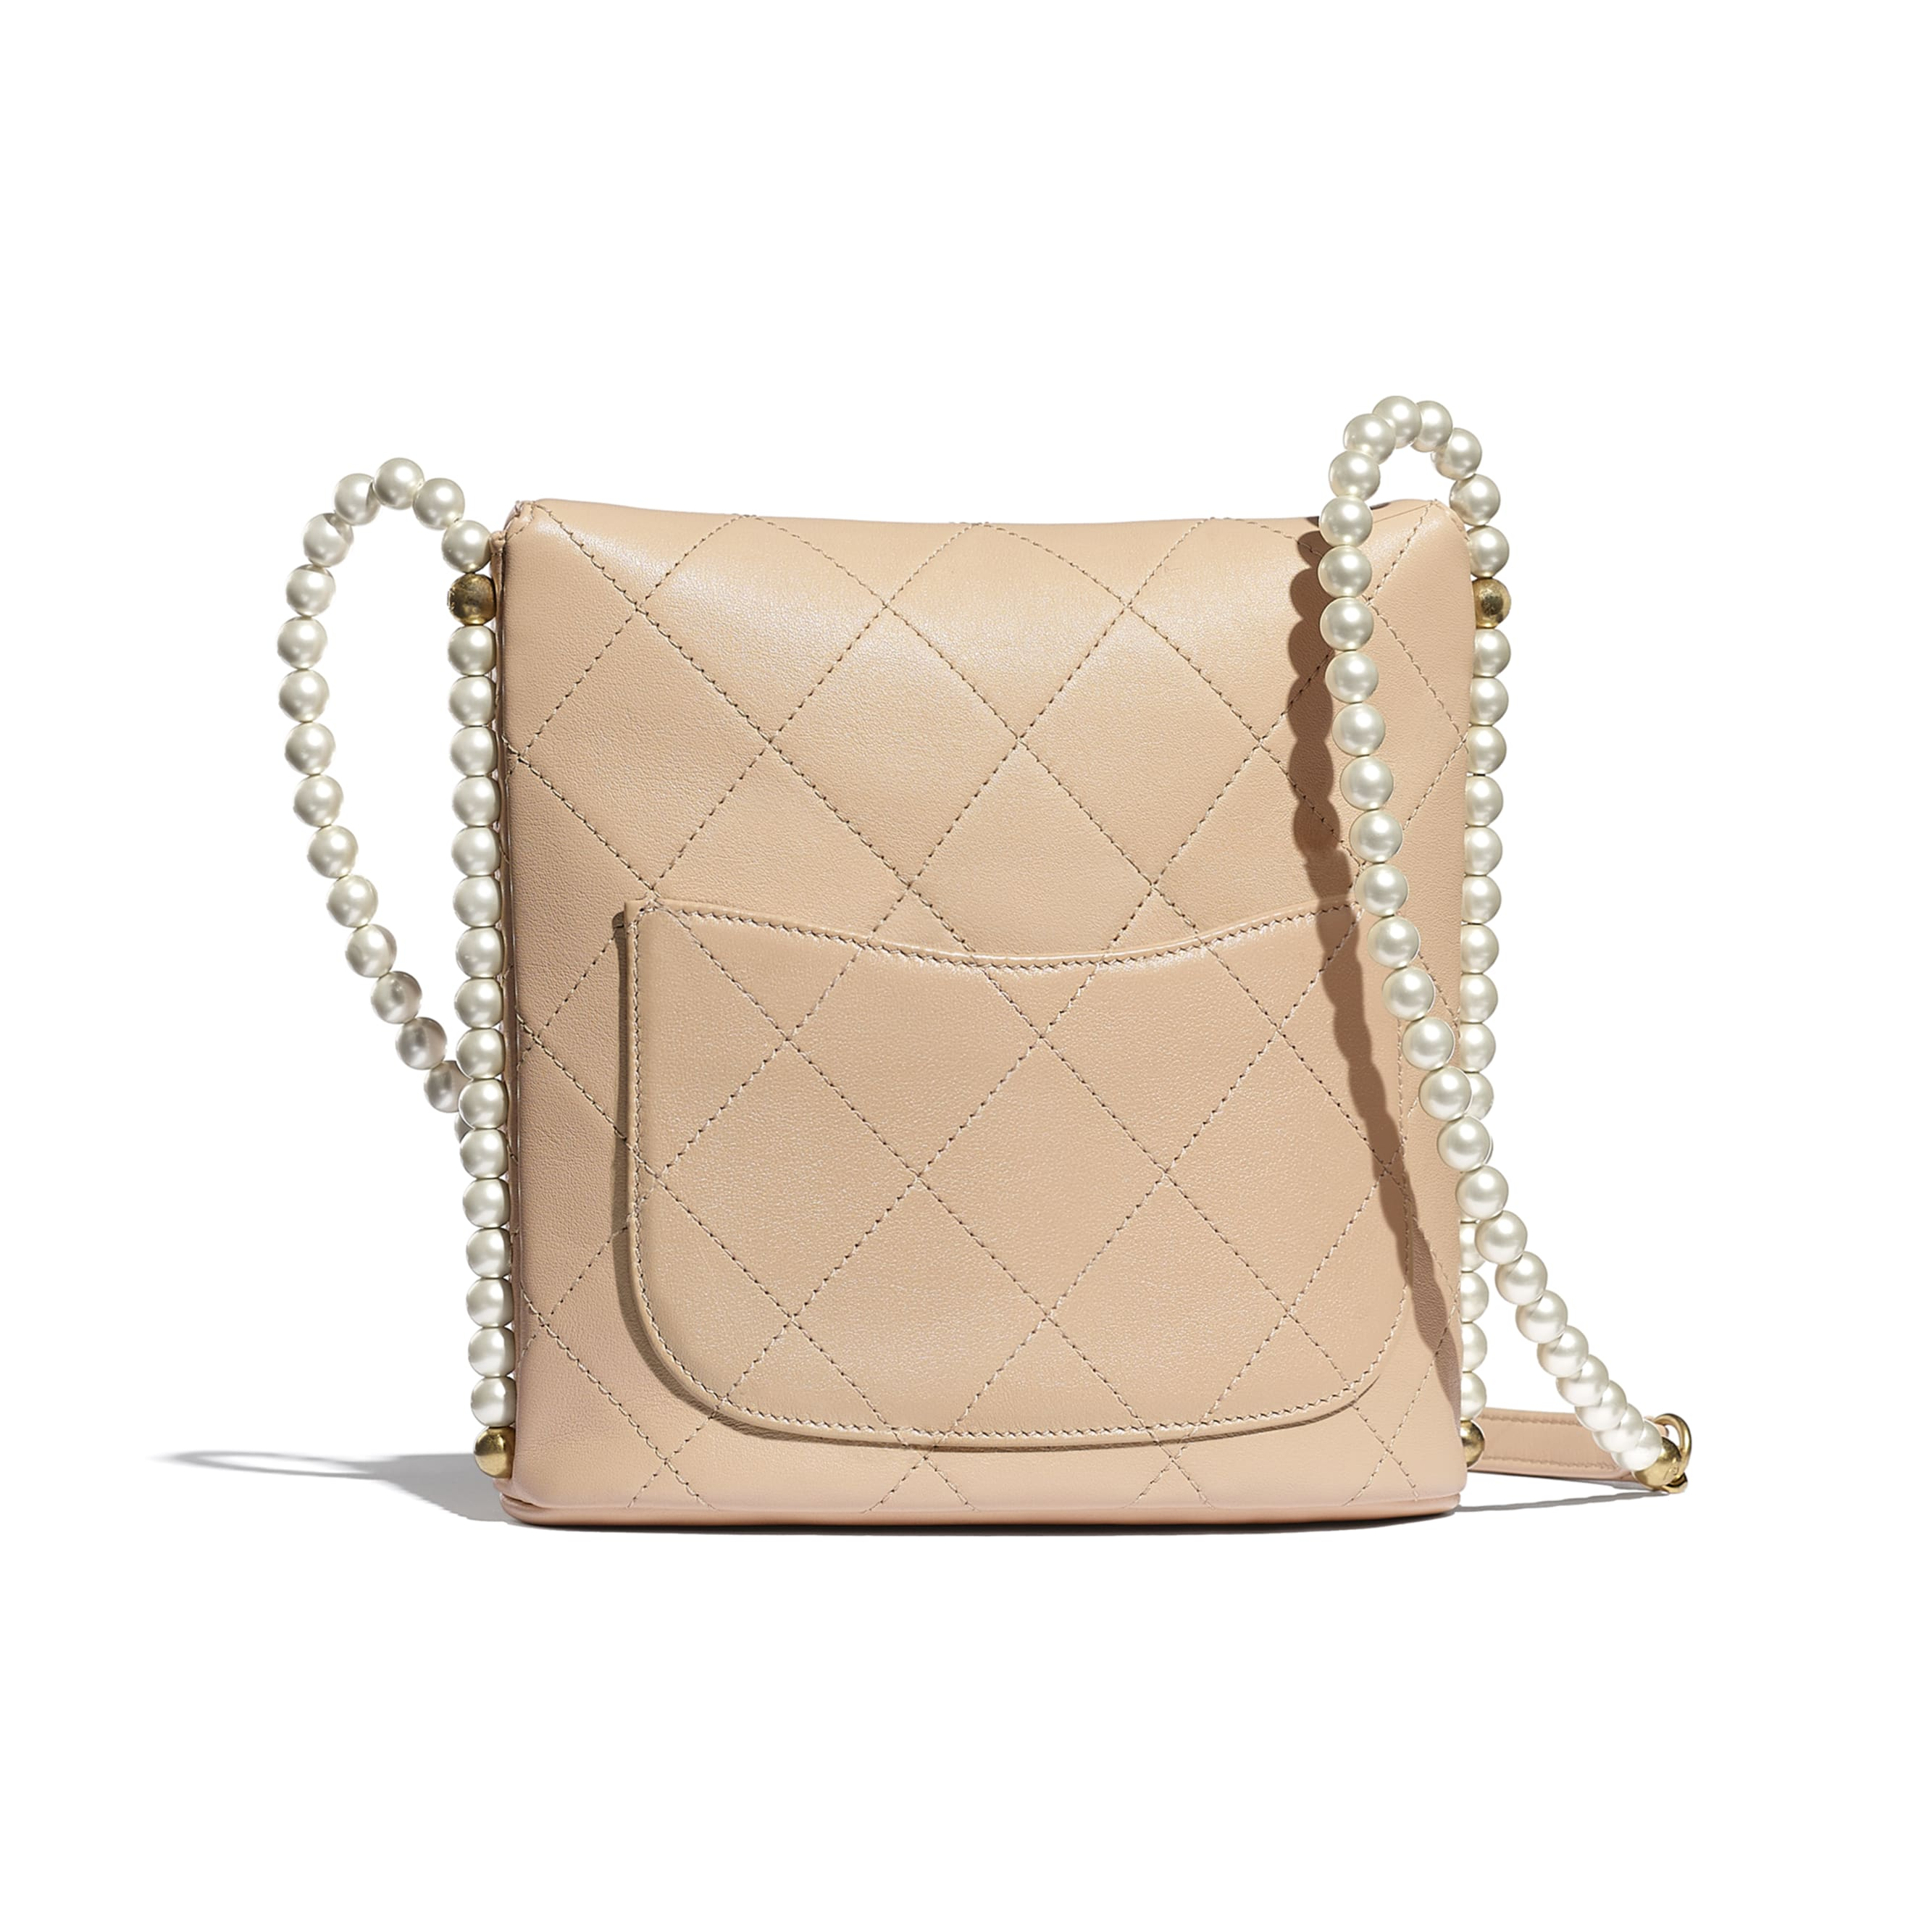 Small Hobo Bag - Beige - Calfskin, Imitation Pearls & Gold-Tone Metal - CHANEL - Alternative view - see standard sized version